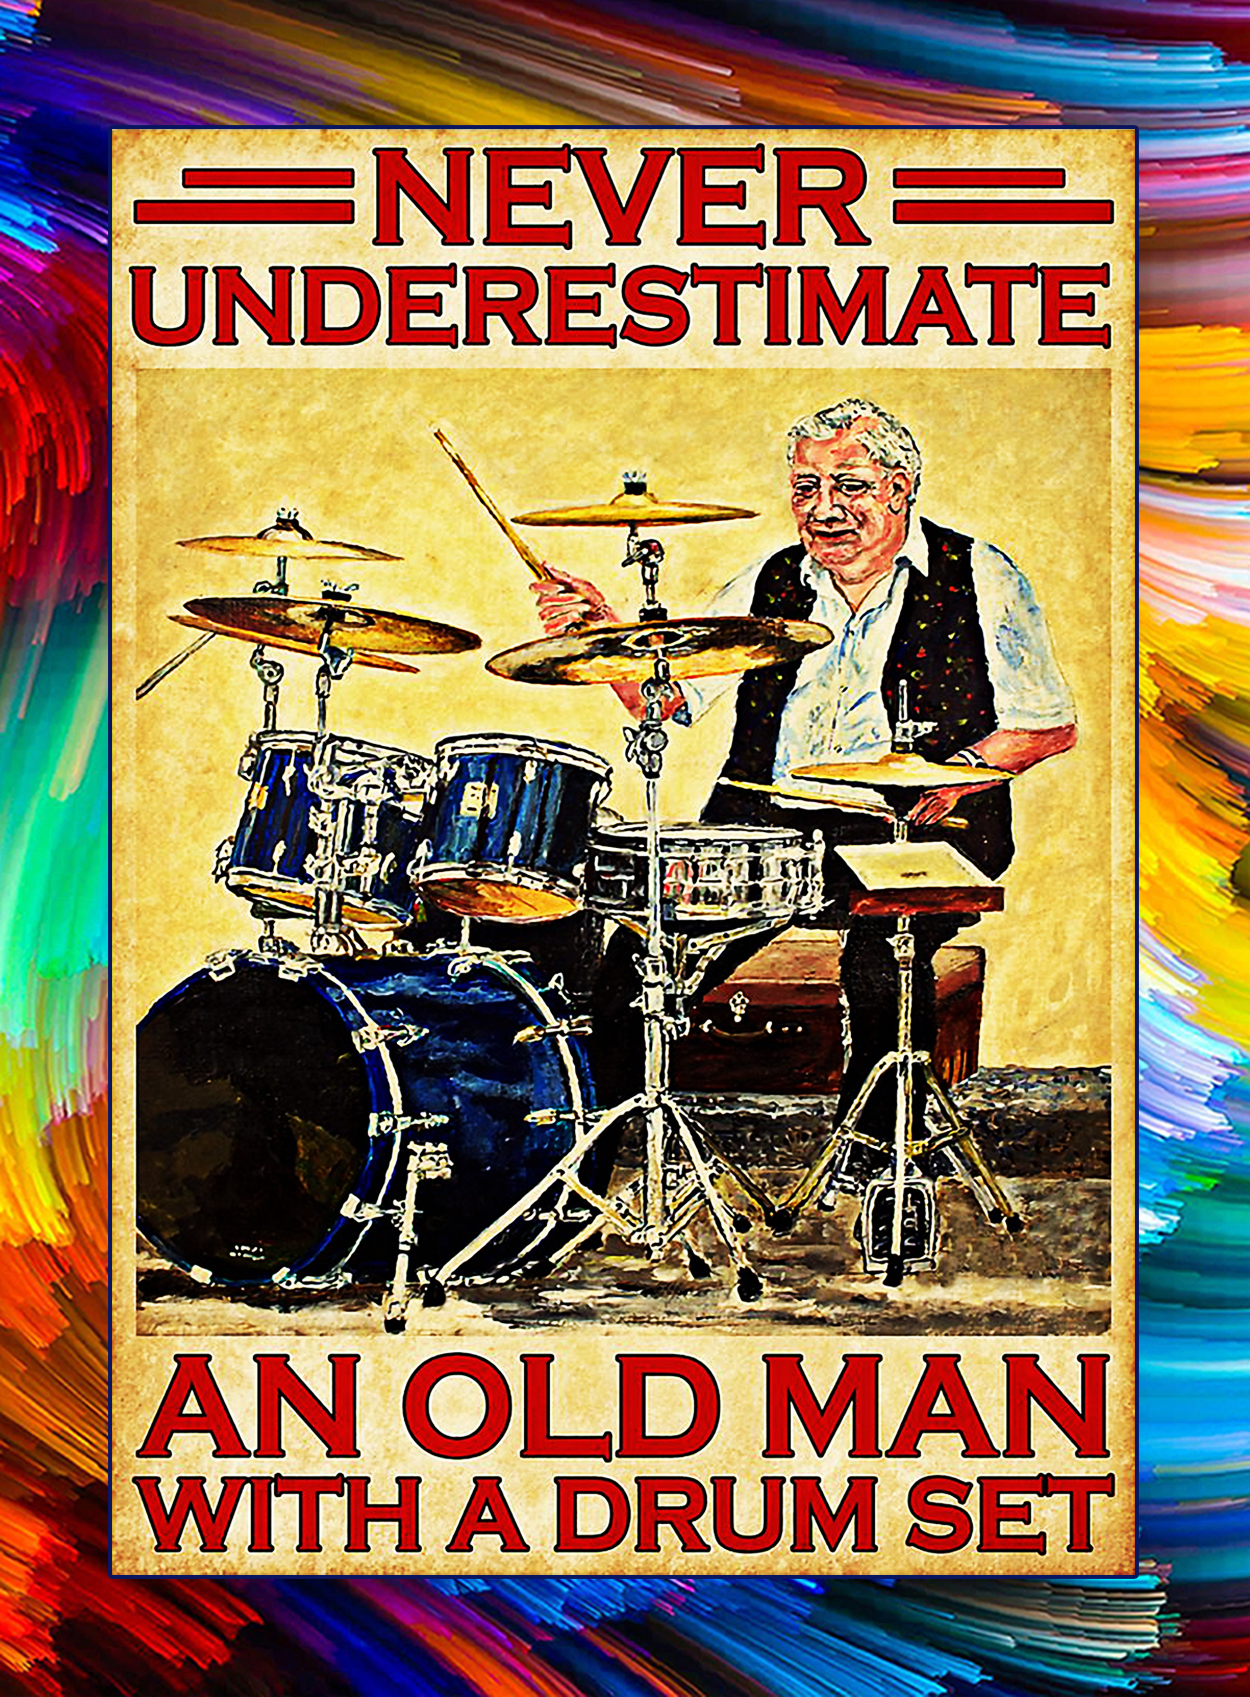 Never underestimate an old man with a drum set poster - A2